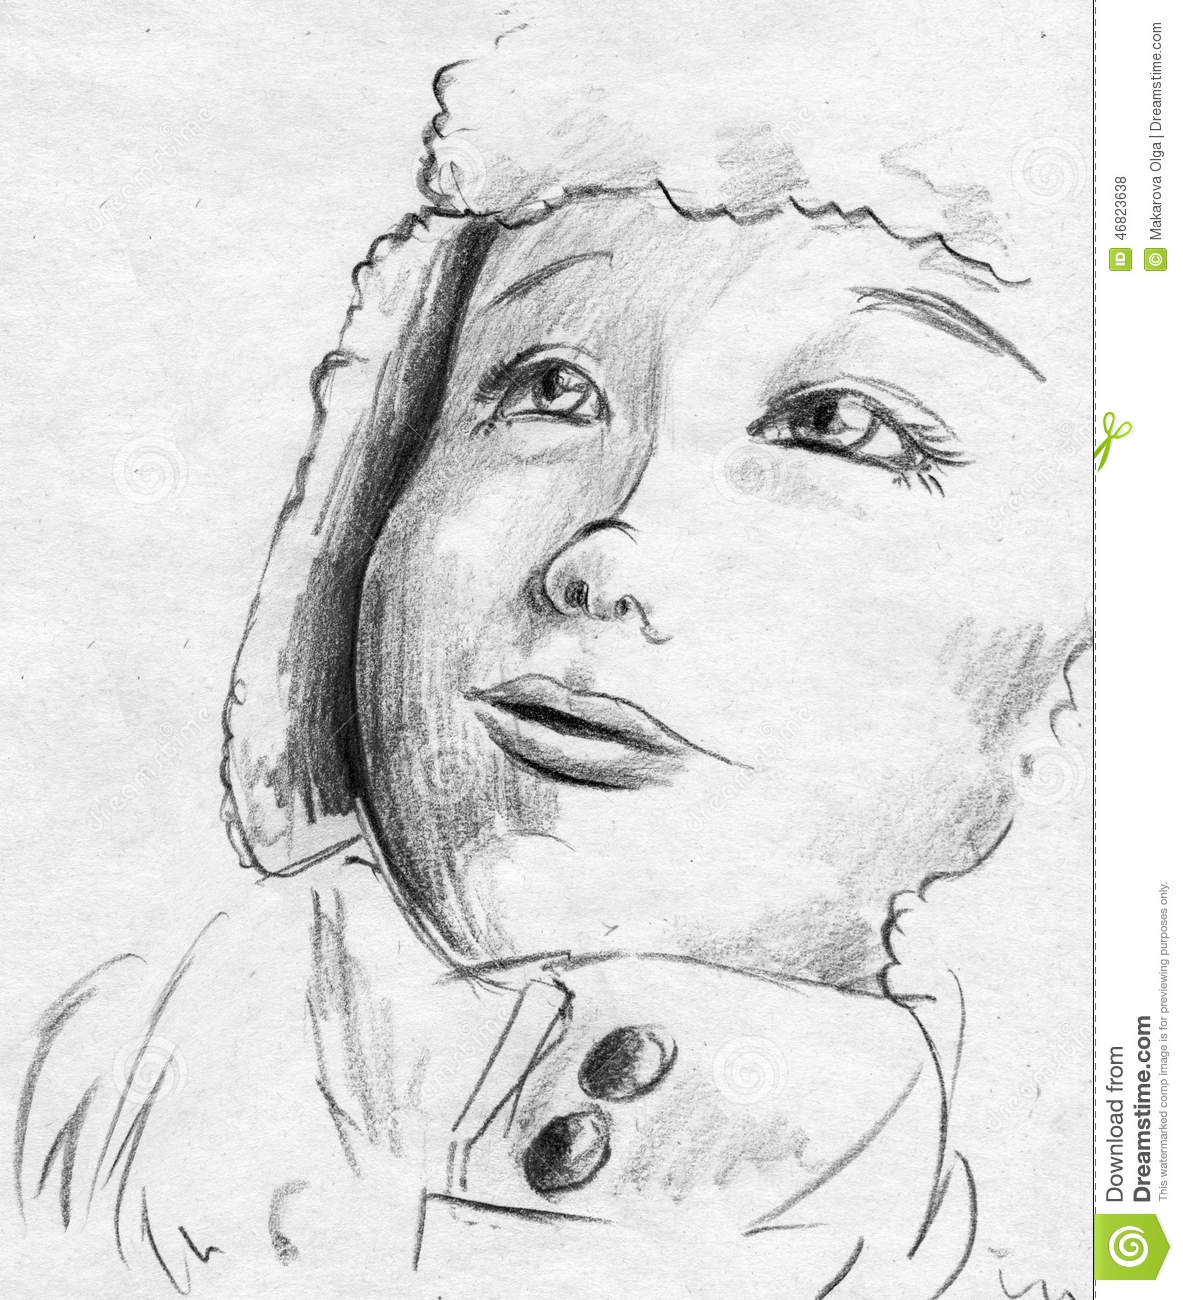 sketch of a child   girl or boy   wearing warm clothes and looking up